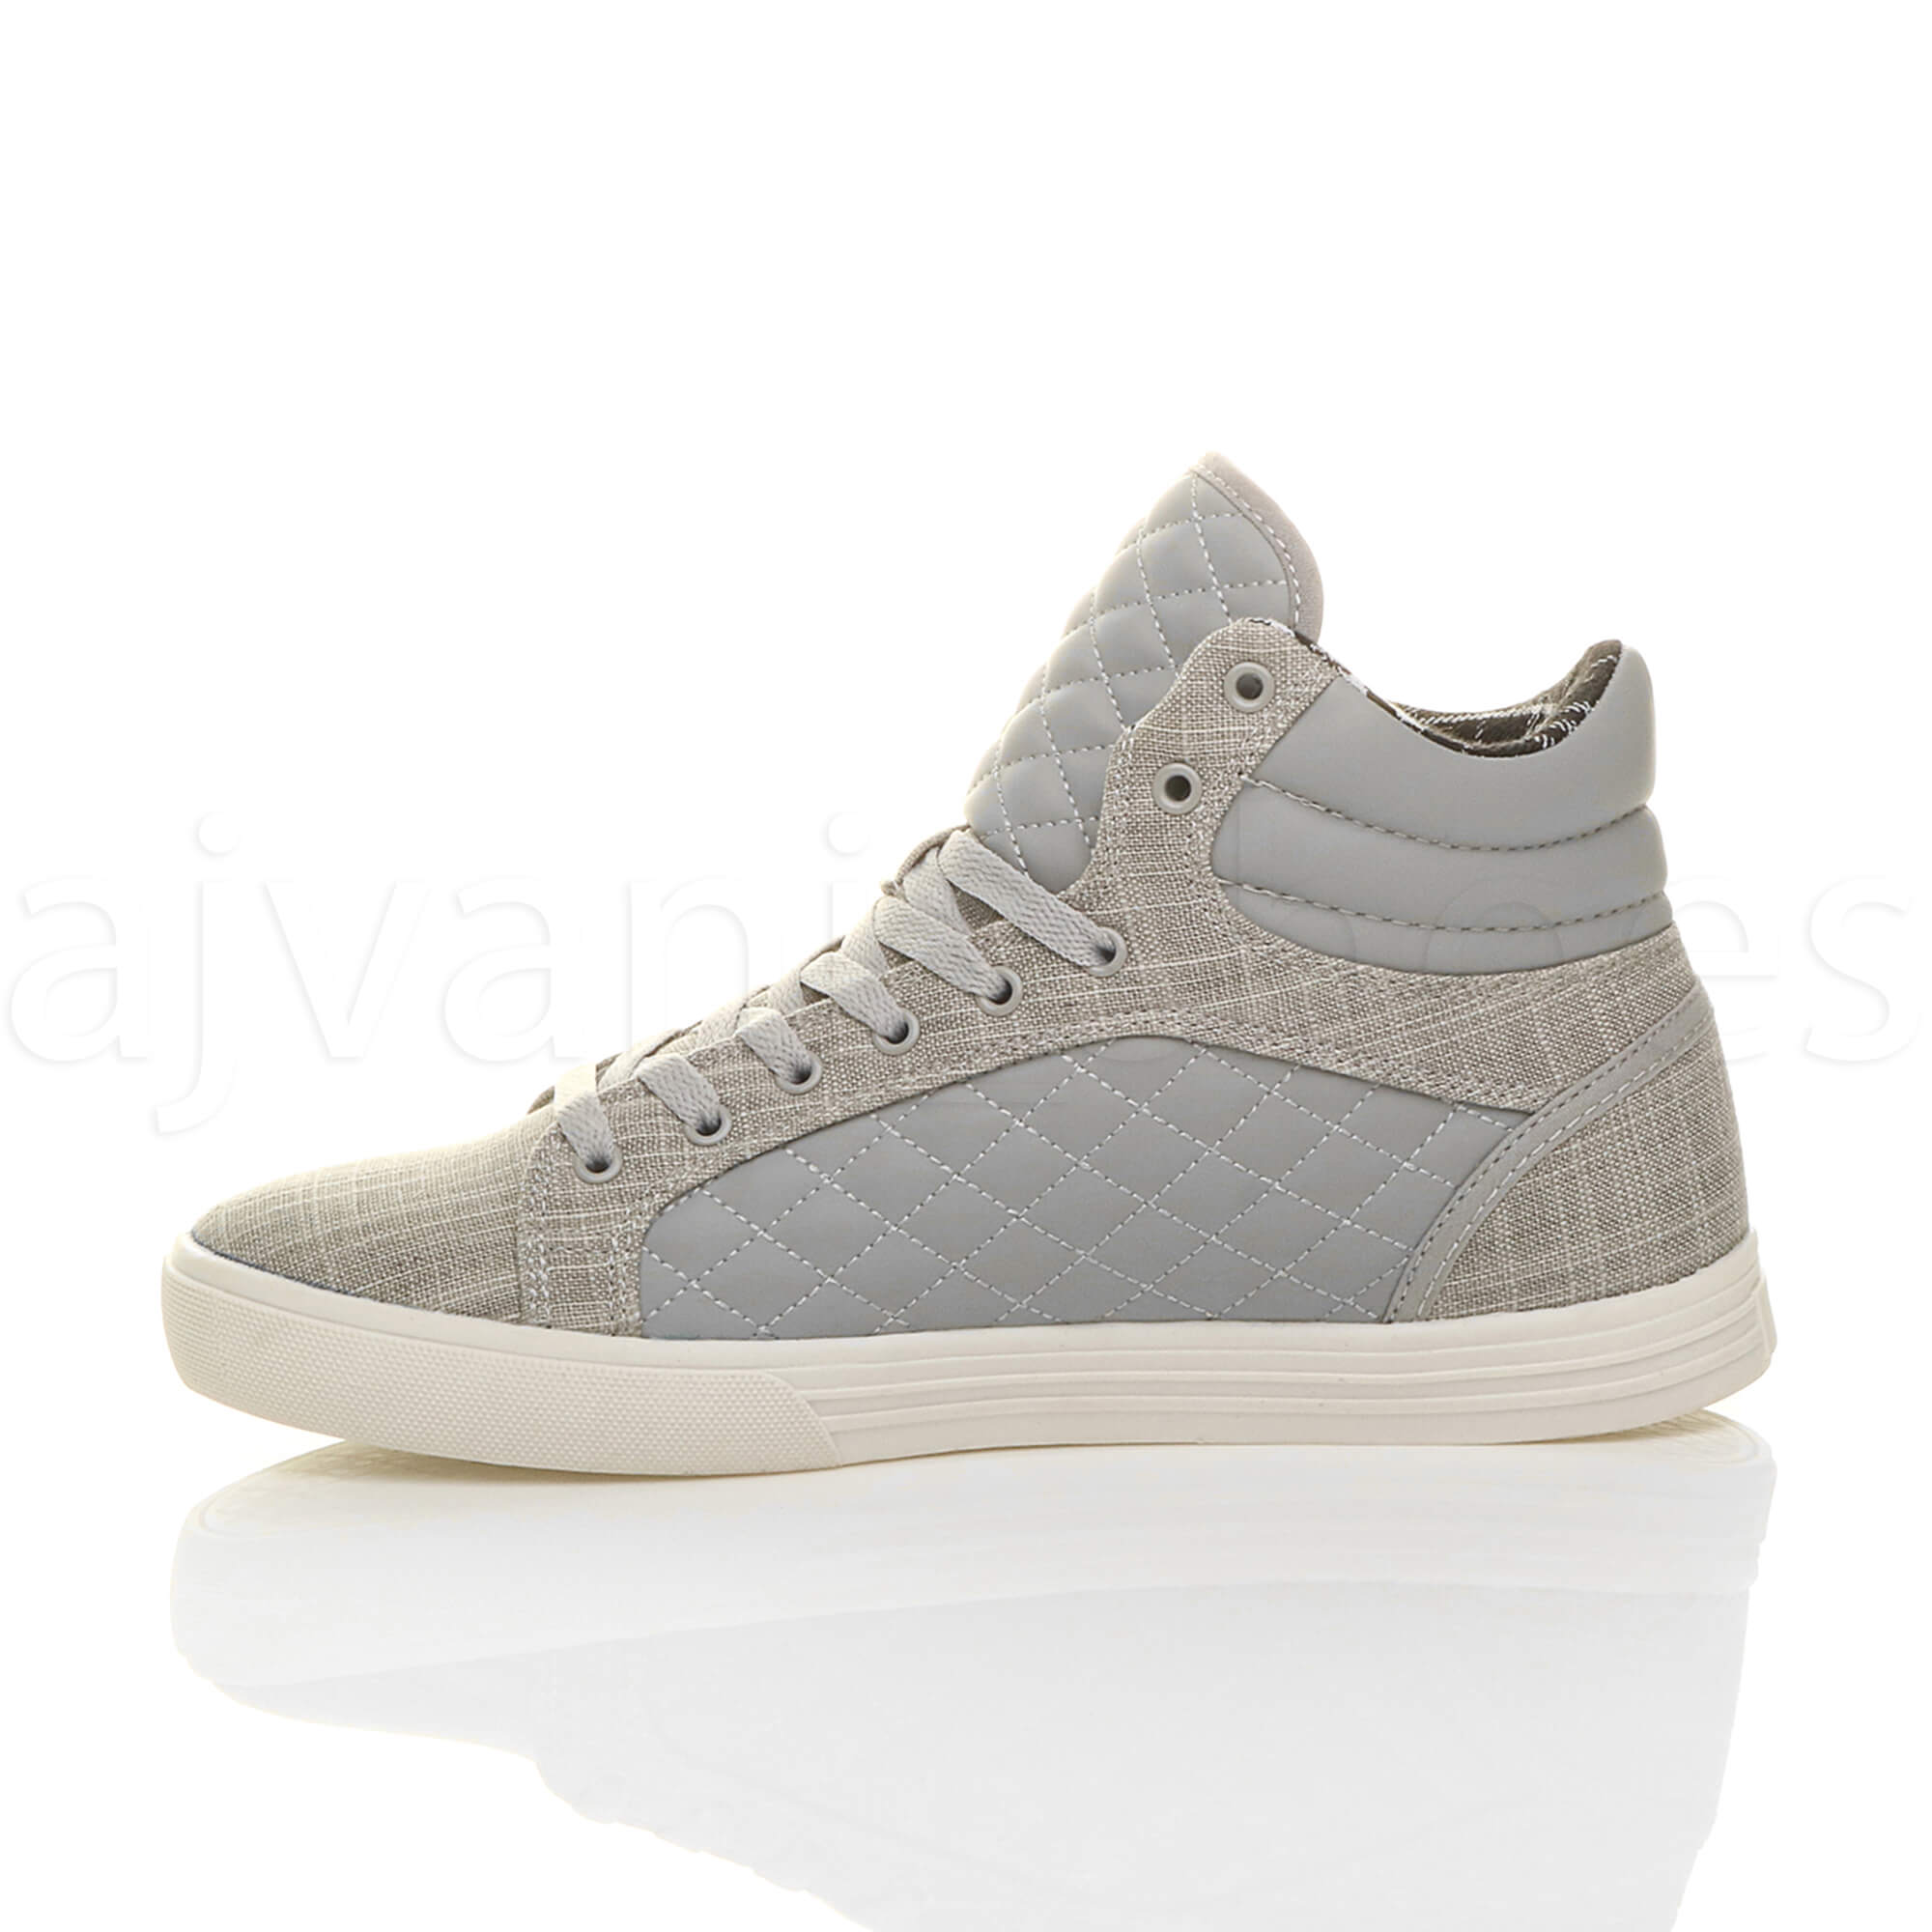 MENS-QUILTED-LACE-UP-FLAT-CASUAL-HI-HIGH-TOP-TRAINERS-SHOES-ANKLE-BOOTS-SIZE thumbnail 18